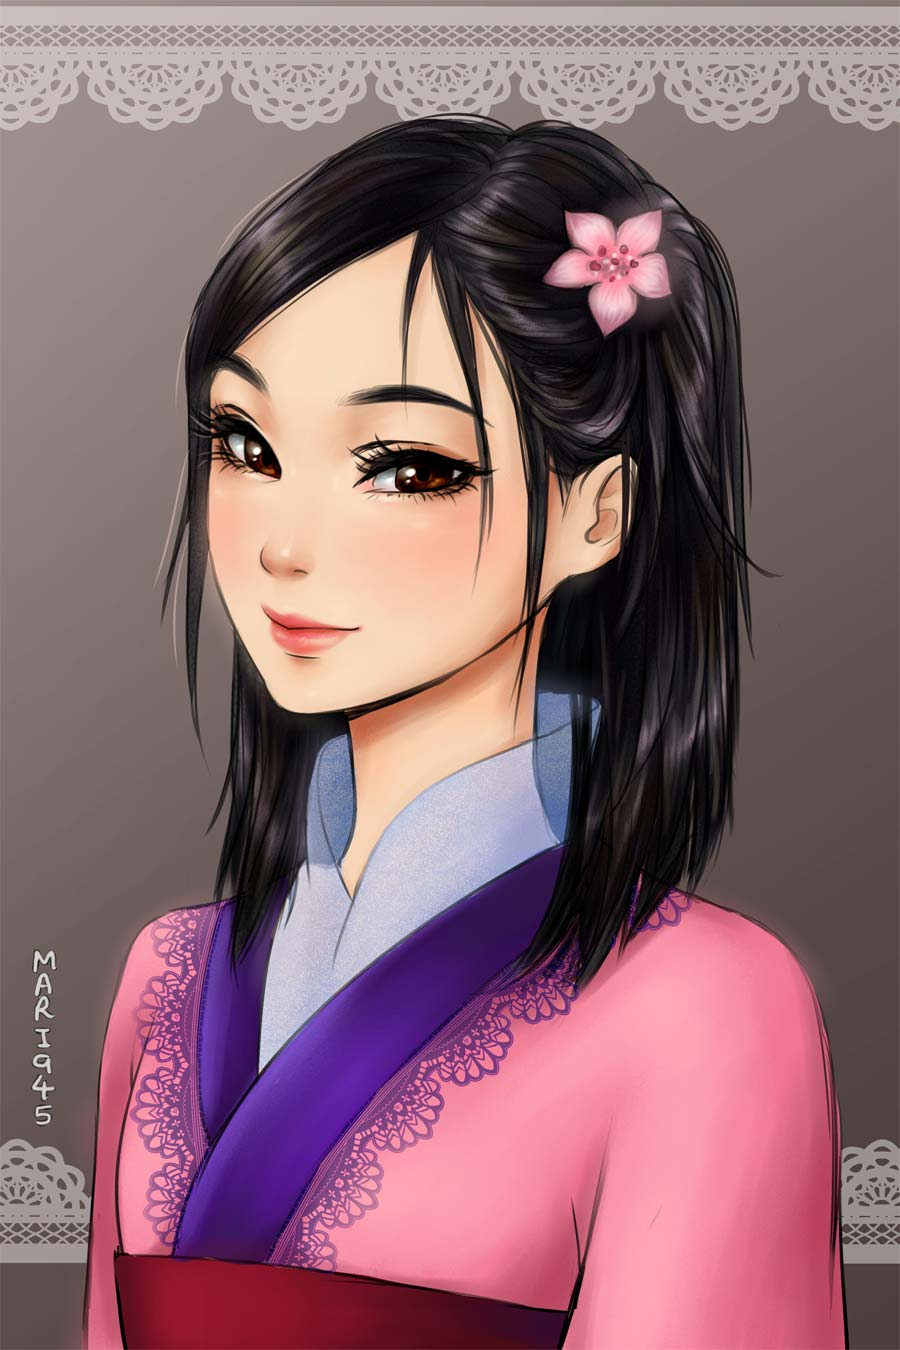 disney-ilustracao-princesas-retratos-animes-010